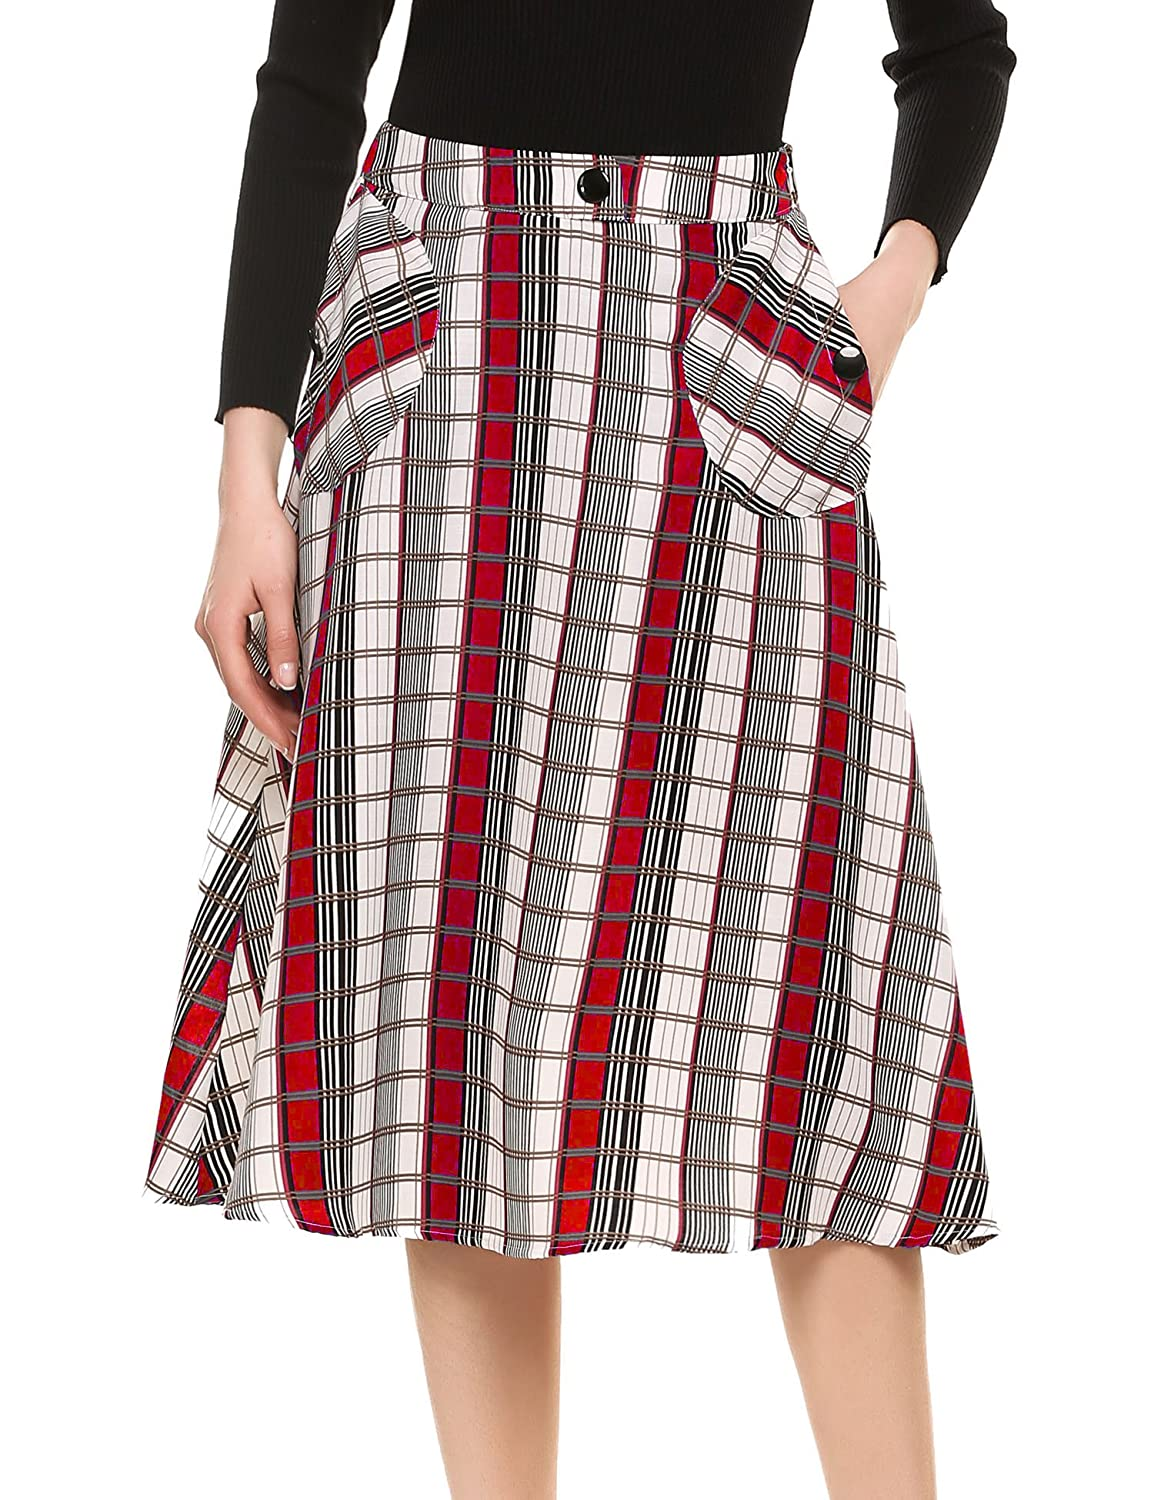 Retro Skirts: Vintage, Pencil, Circle, & Plus Sizes Meaneor Women Elegant A-Line Skirts High Waist Plaid Skirts With Two Side Big Pockets $22.99 AT vintagedancer.com